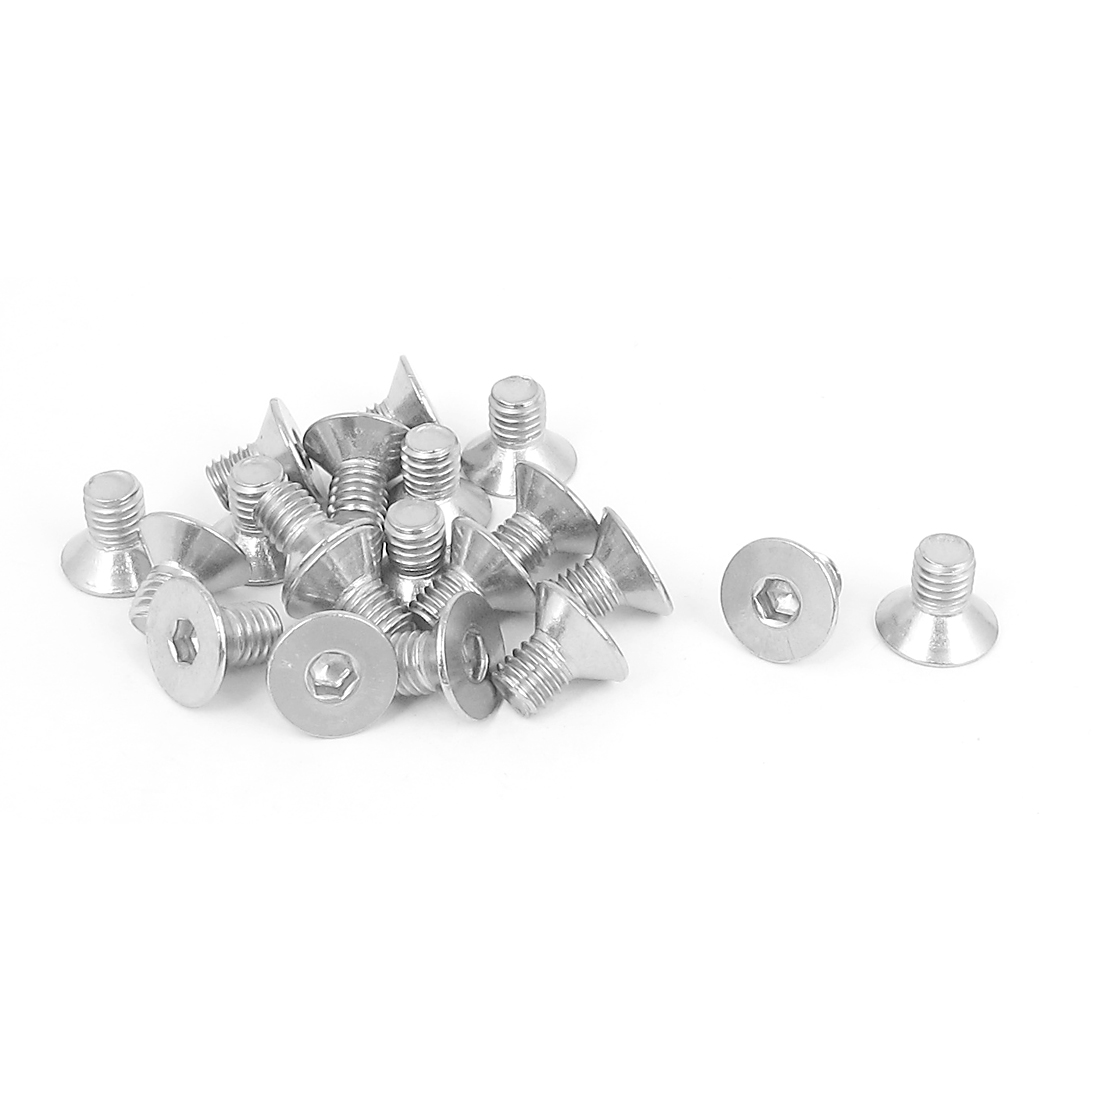 M5 x 8mm Metric 304 Stainless Steel Hex Socket Countersunk Flat Head Screw Bolts 20PCS